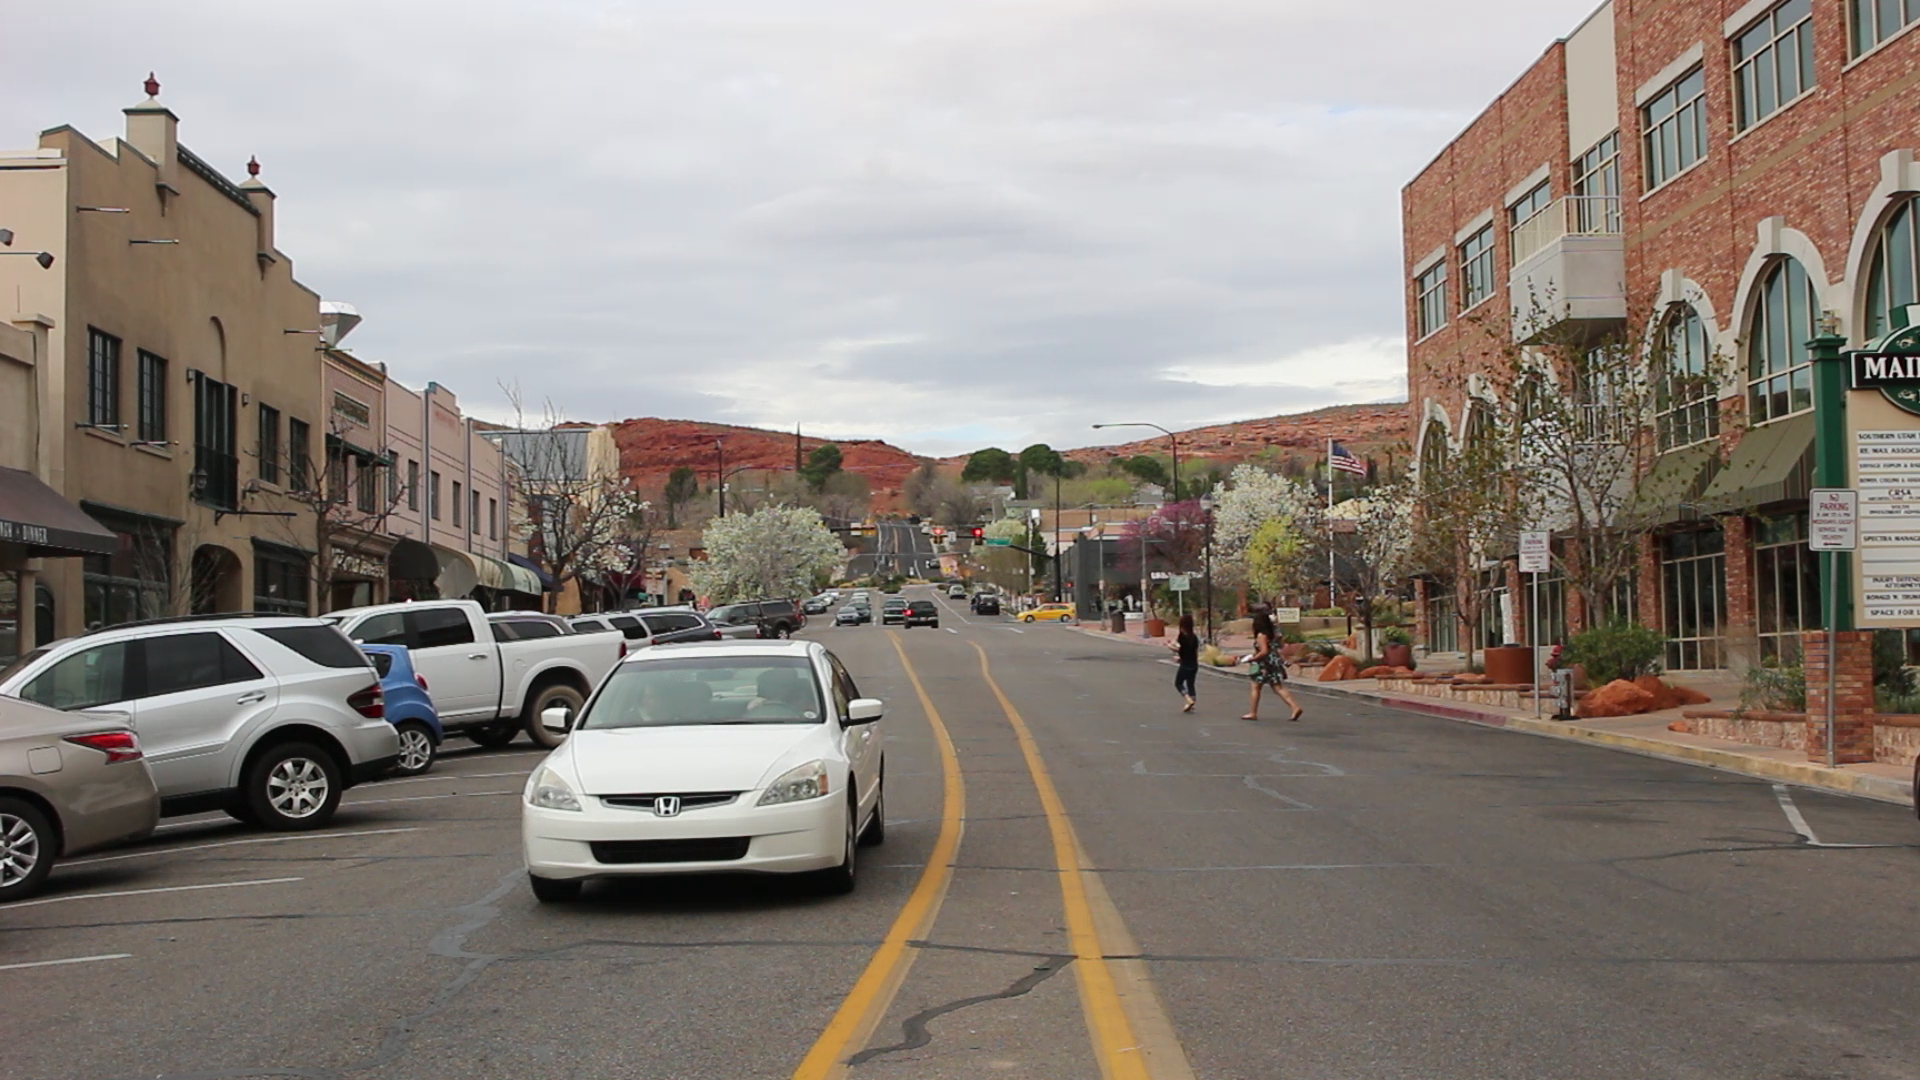 Main Street, downtown St. George. Proposition 1, a ballot initiate that proposes a quarter-cent sales tax increase, would provide additional funding toward local road infrastructure and public transit in Washington County and its municipalities. Civic officials are in favor of the measure, while some residents do not wish to see a new tax of any sort pass, St. George, Utah, March 5, 2016 | Photo by Mori Kessler, St. George News